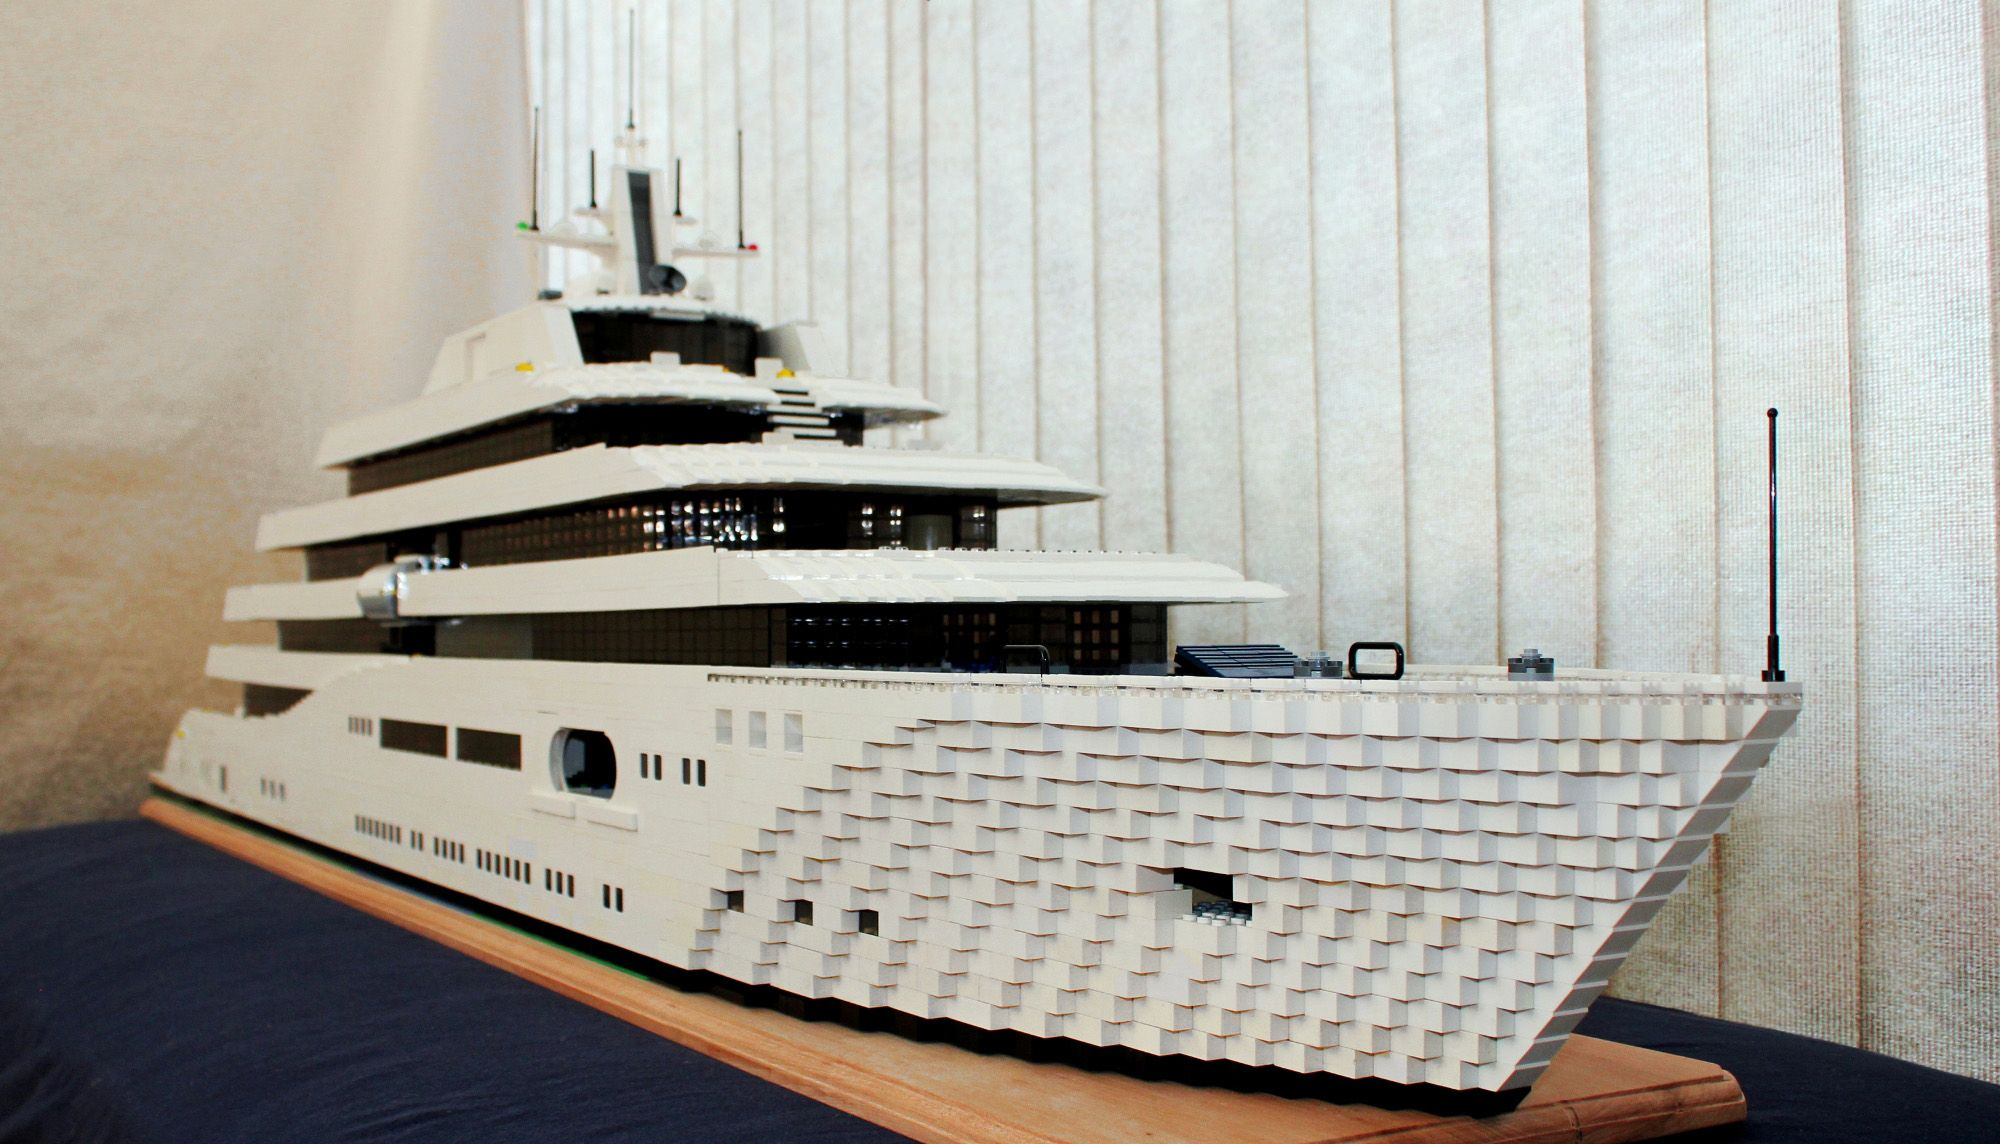 LEGO Mega-Yacht Bow by Keith Orlando